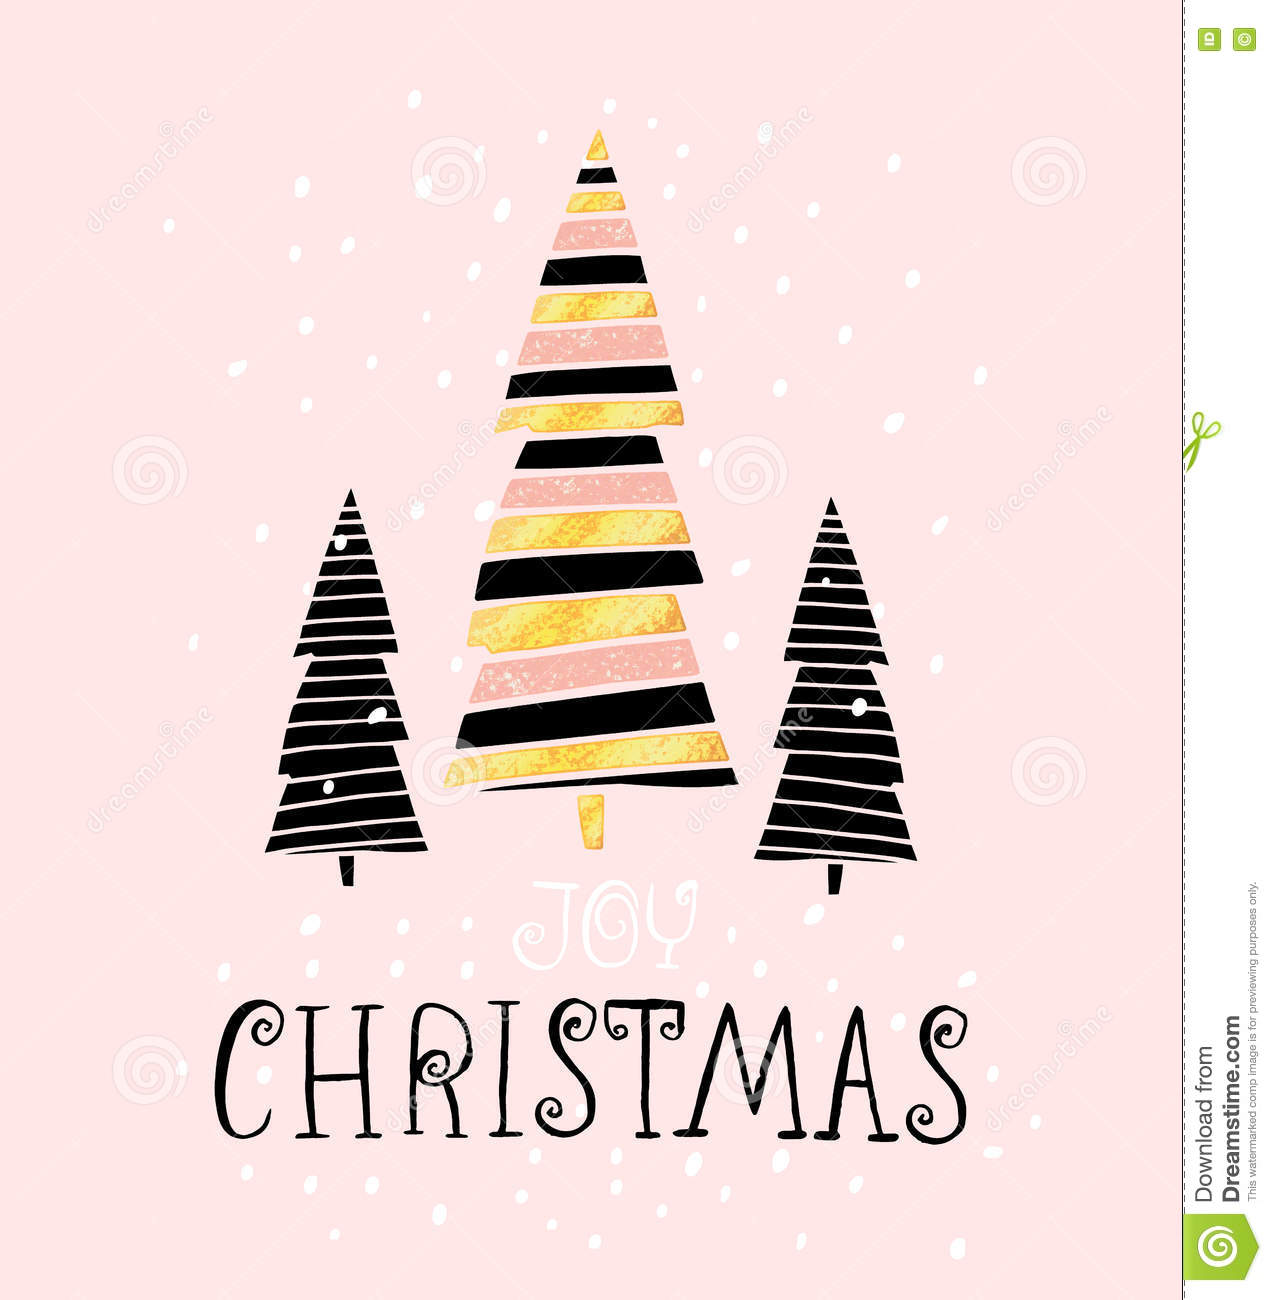 Joy christmas winter holiday saying hand drawn greeting card with download joy christmas winter holiday saying hand drawn greeting card with handwritten lettering and m4hsunfo